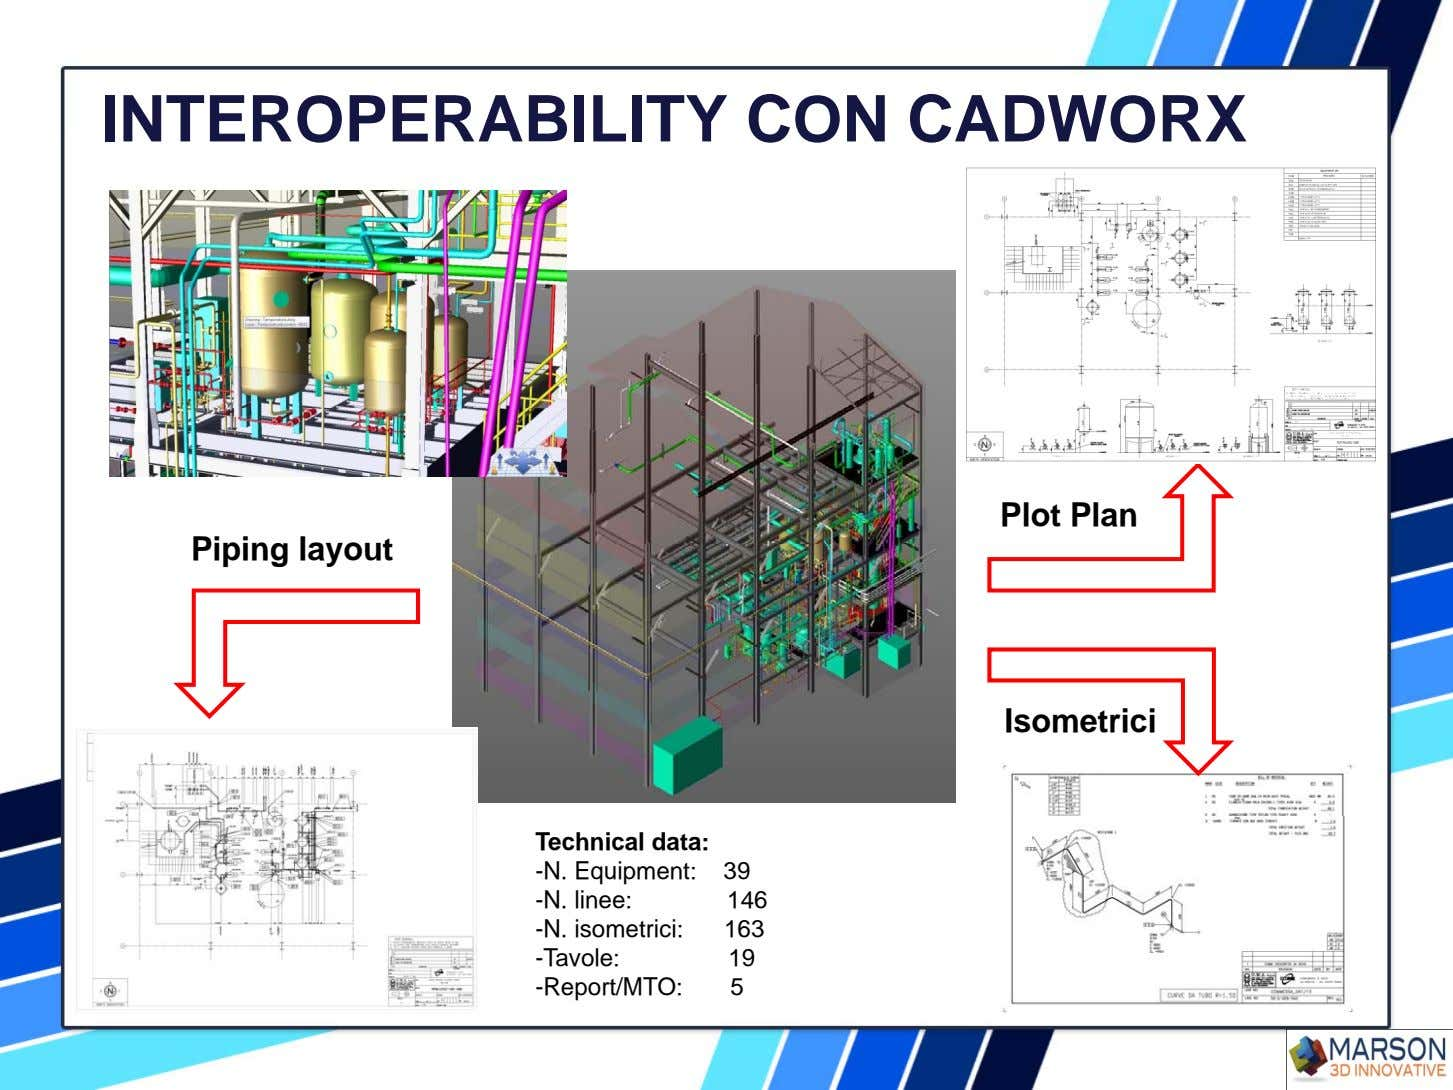 INTEROPERABILITY CON CADWORX Plot Plan Piping layout Isometrici Technical data: -N. Equipment: 39 -N. linee: